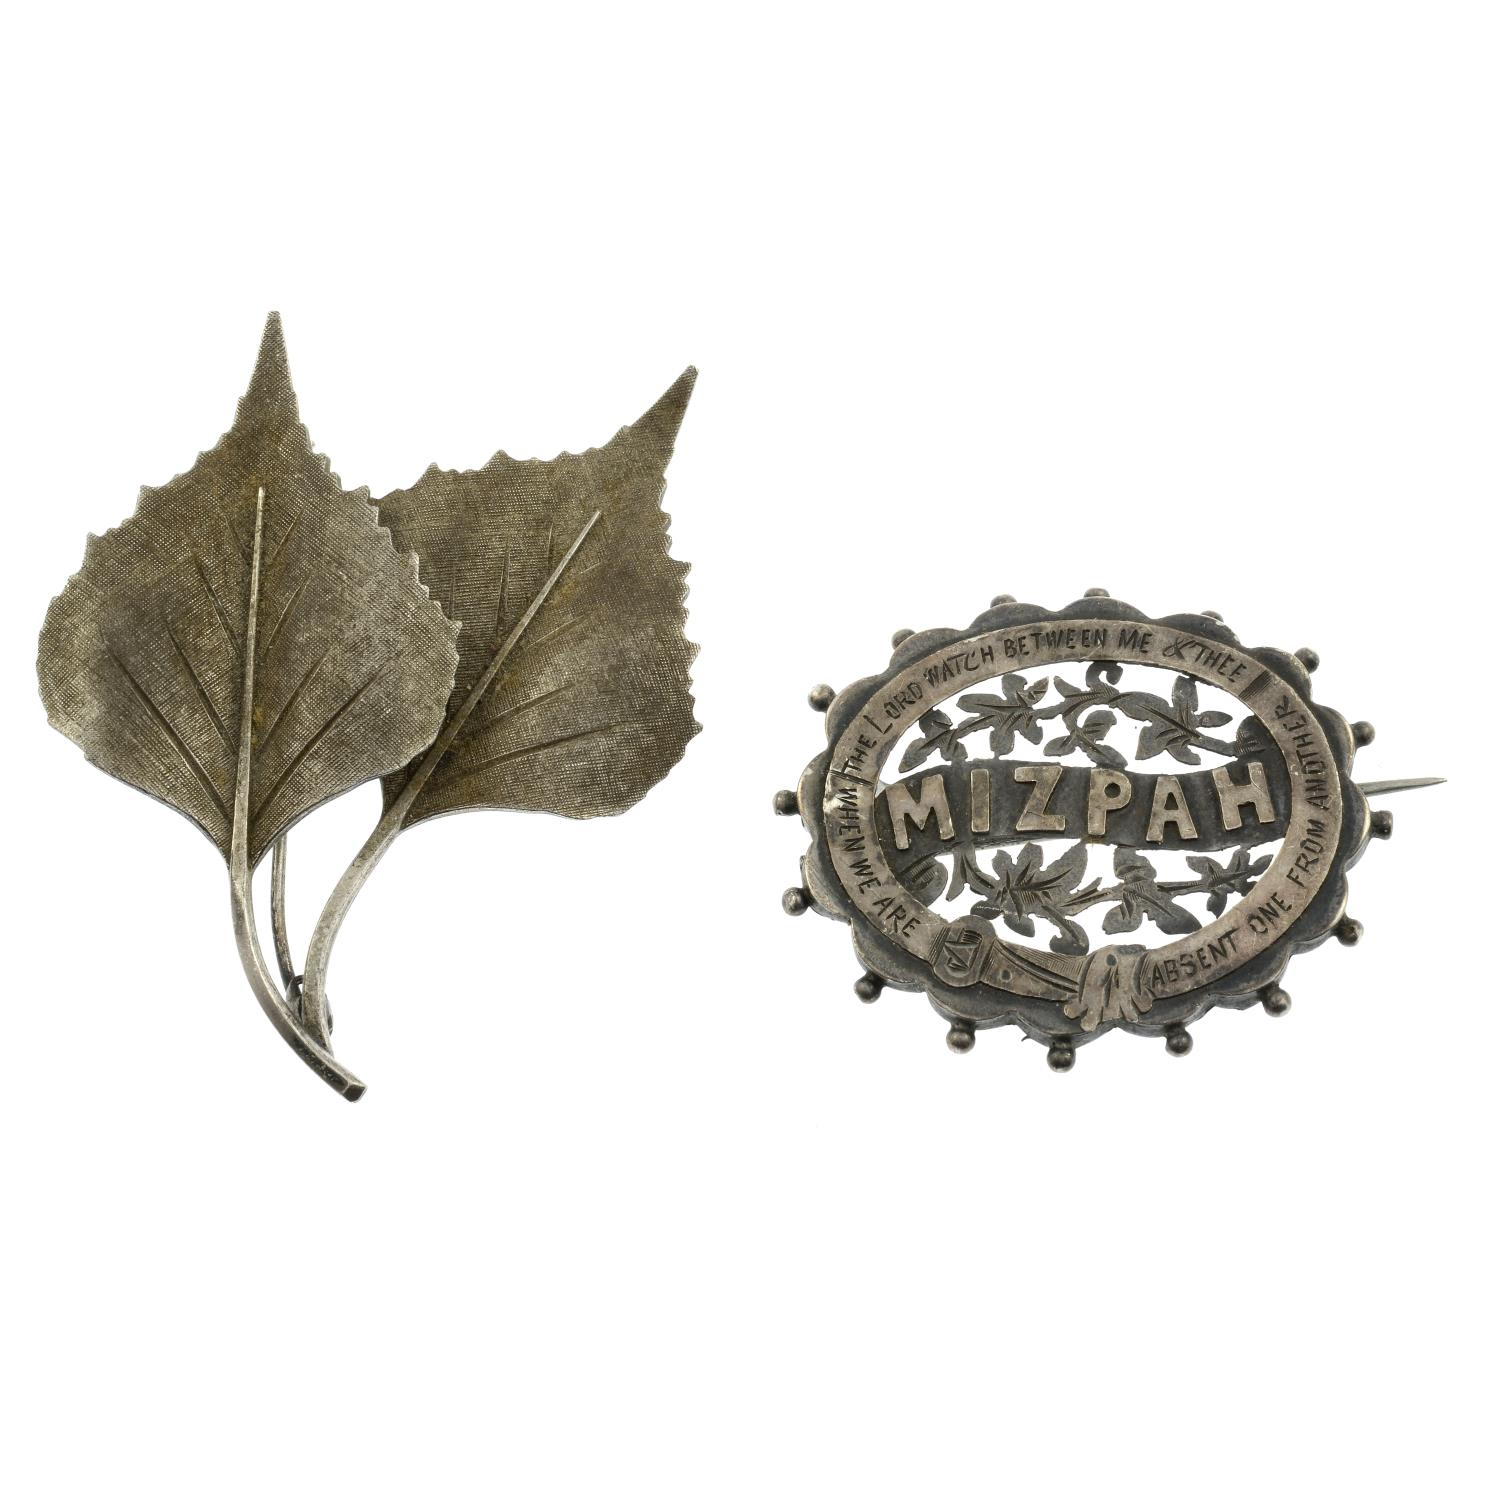 A selection of costume jewellery, to include two silver brooches.